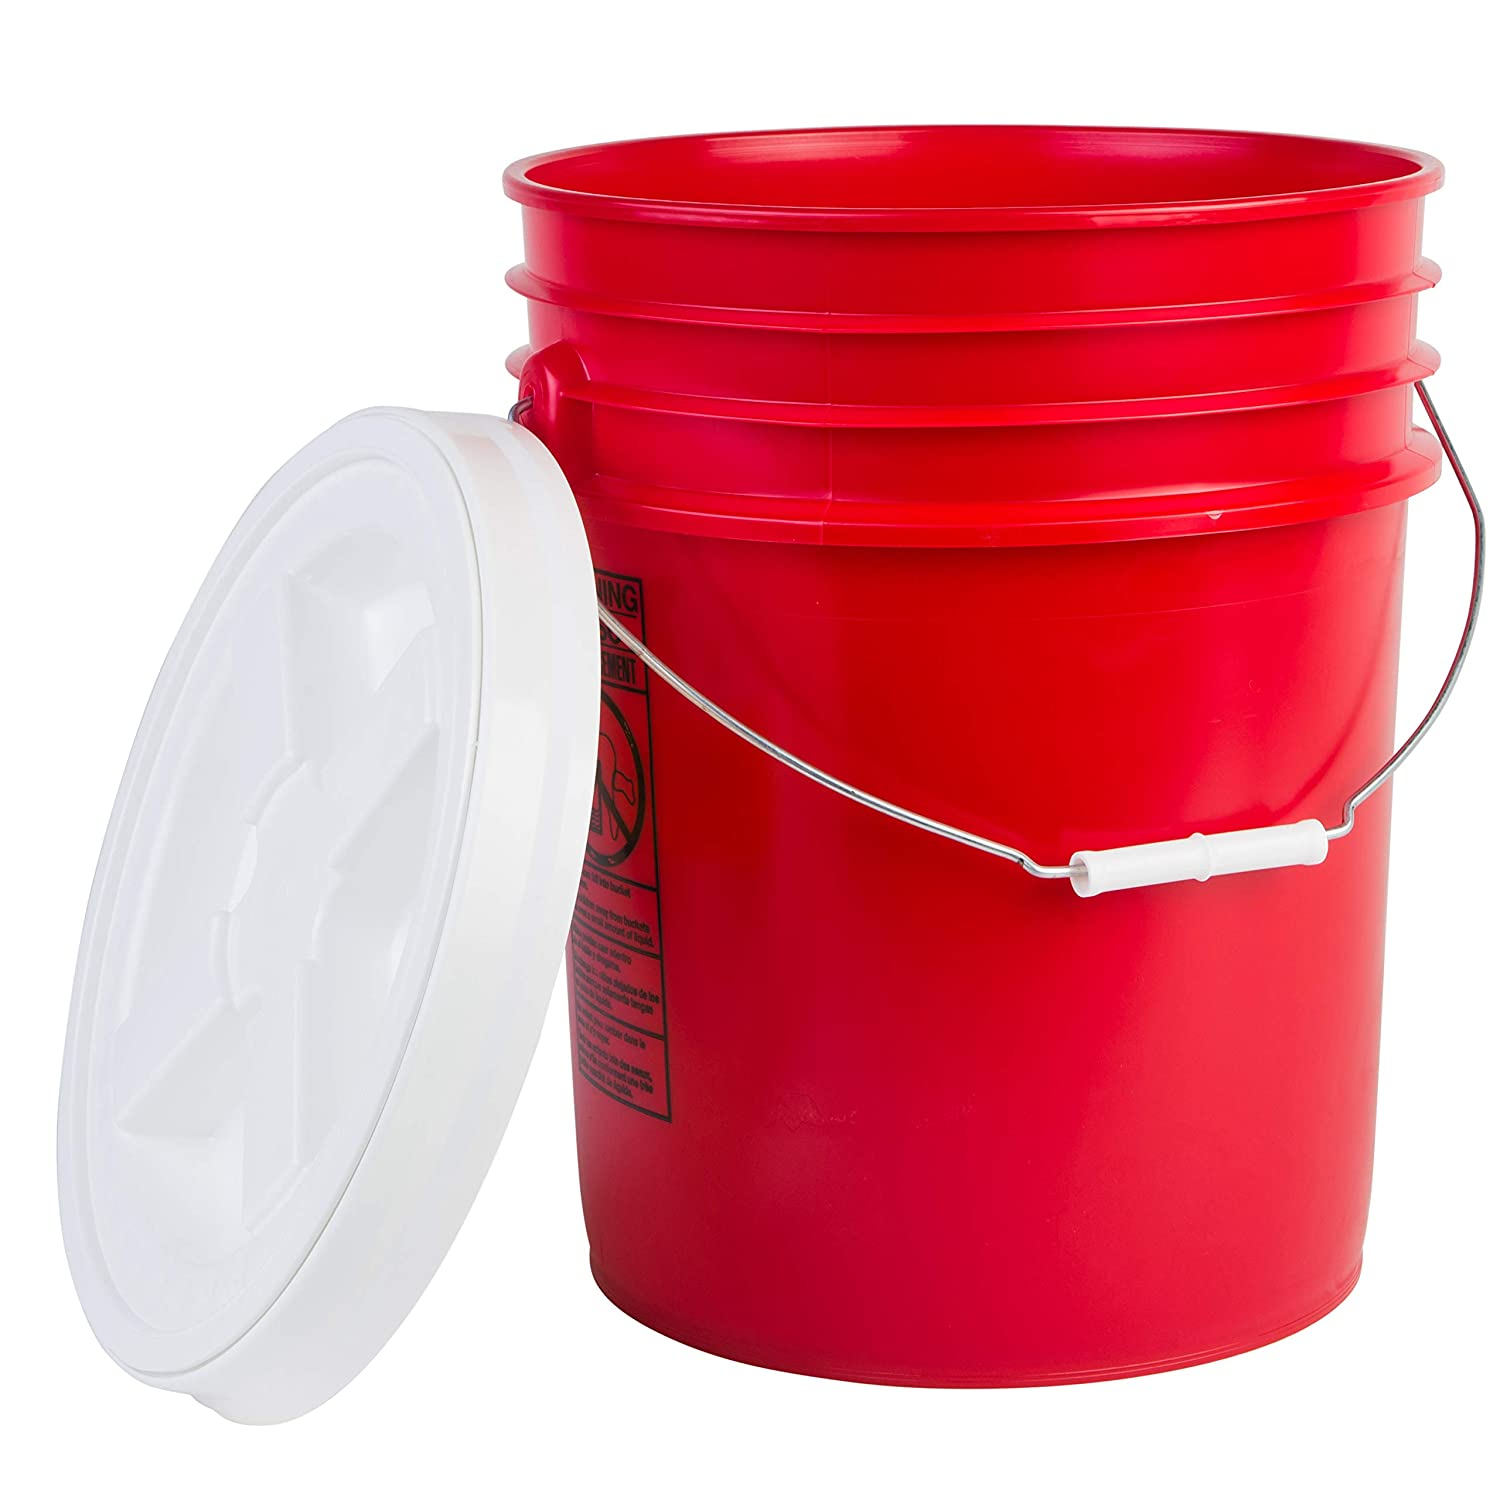 Hudson Exchange Premium 5 Gallon Bucket with online shop Gamma Shipping included Lid Seal HDP